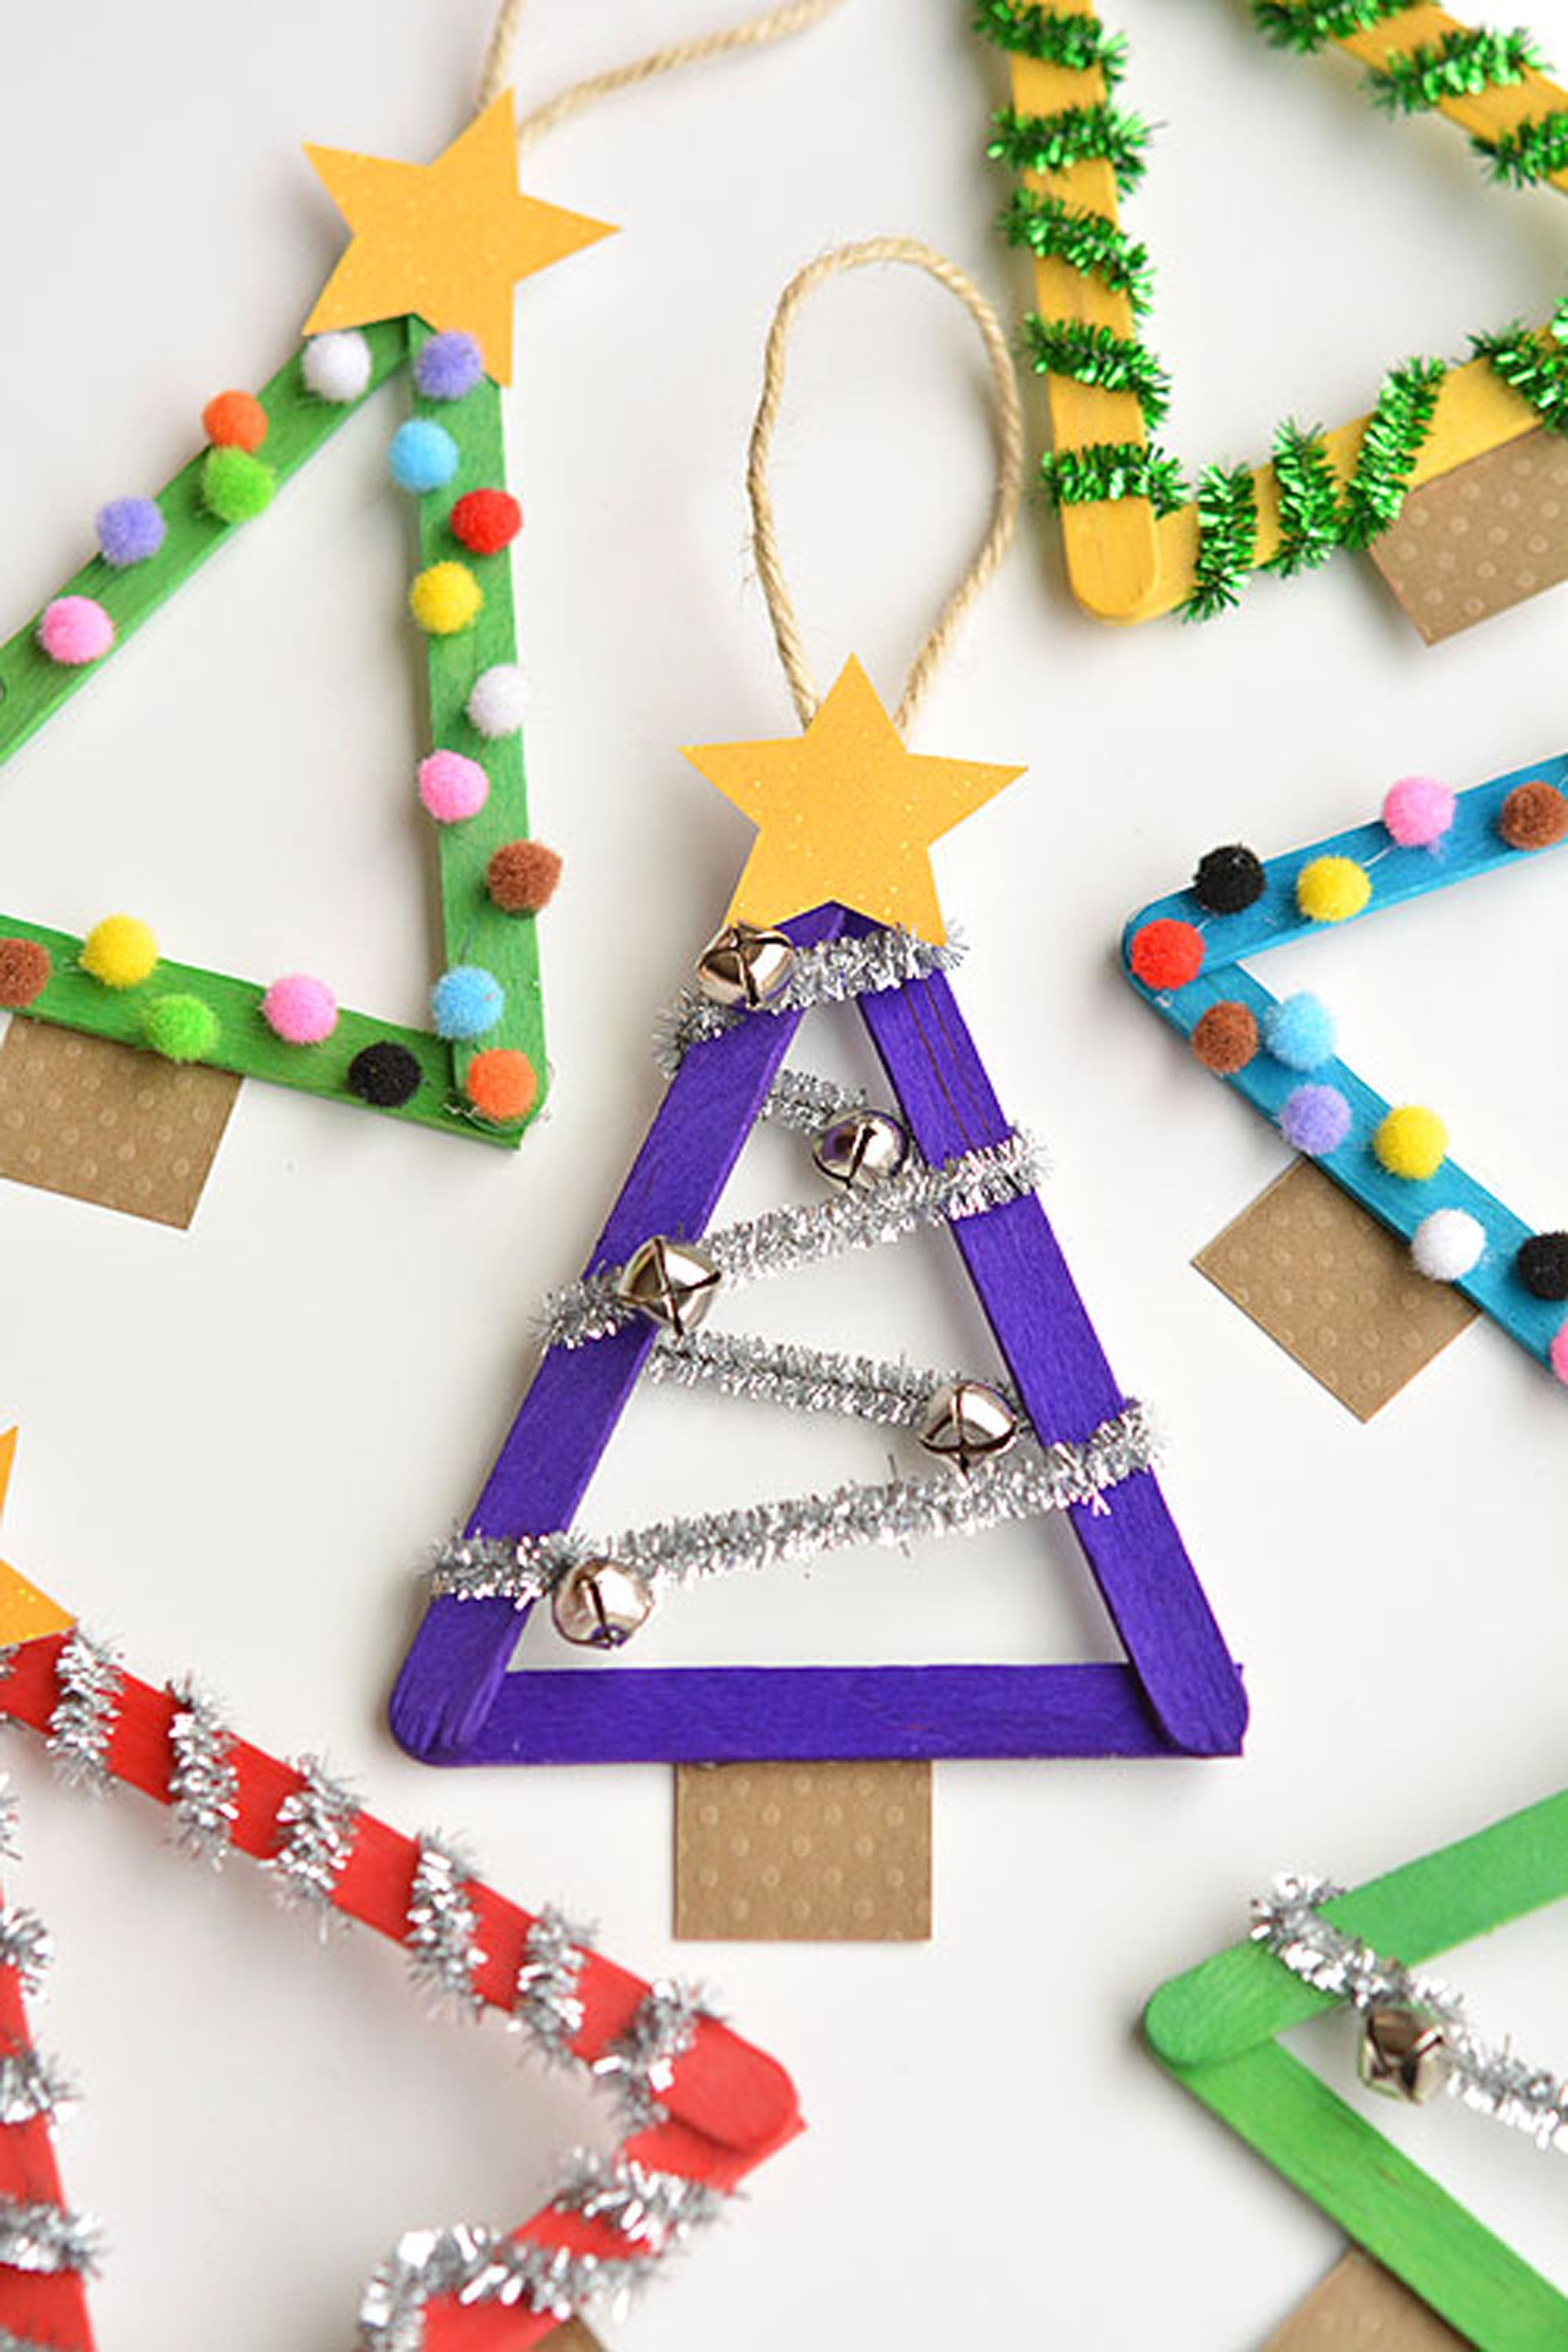 25 Best Christmas Crafts For Kids to Make Ideas for